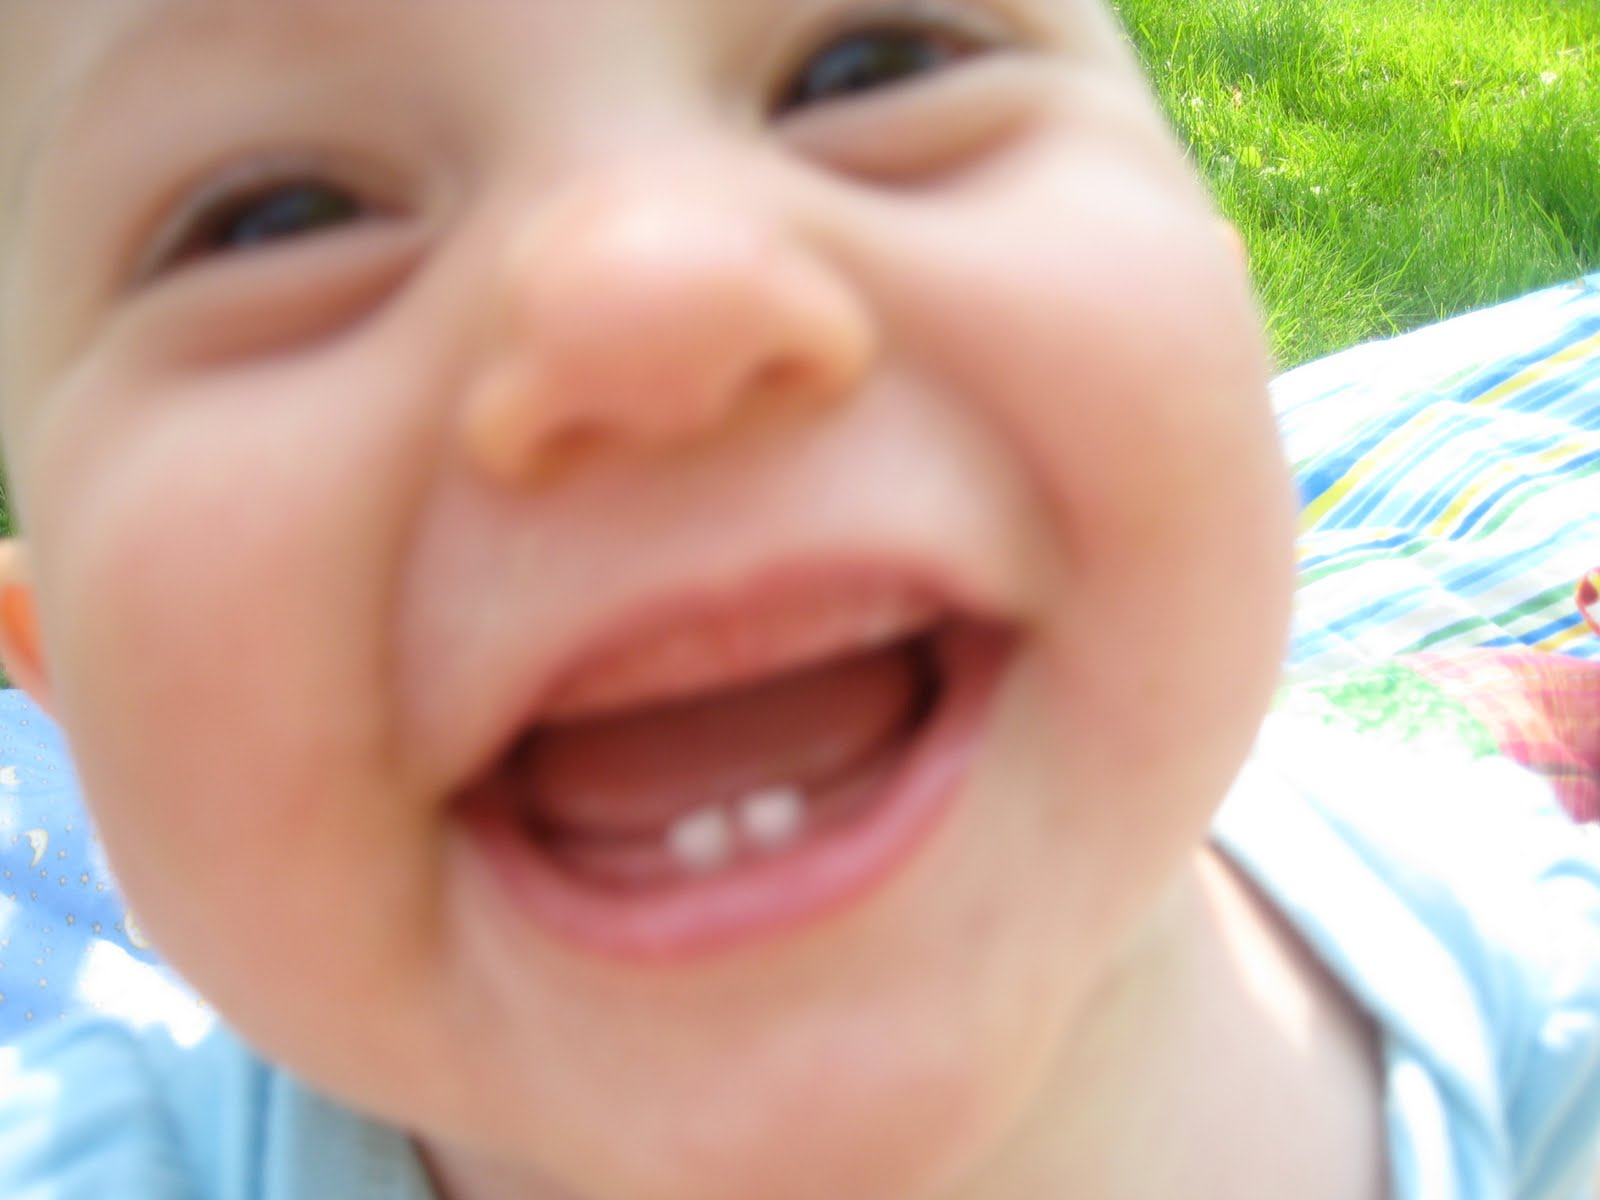 # White Teeth Pictures - Power Swap Teeth Whitening Pictures of babies first teeth coming through